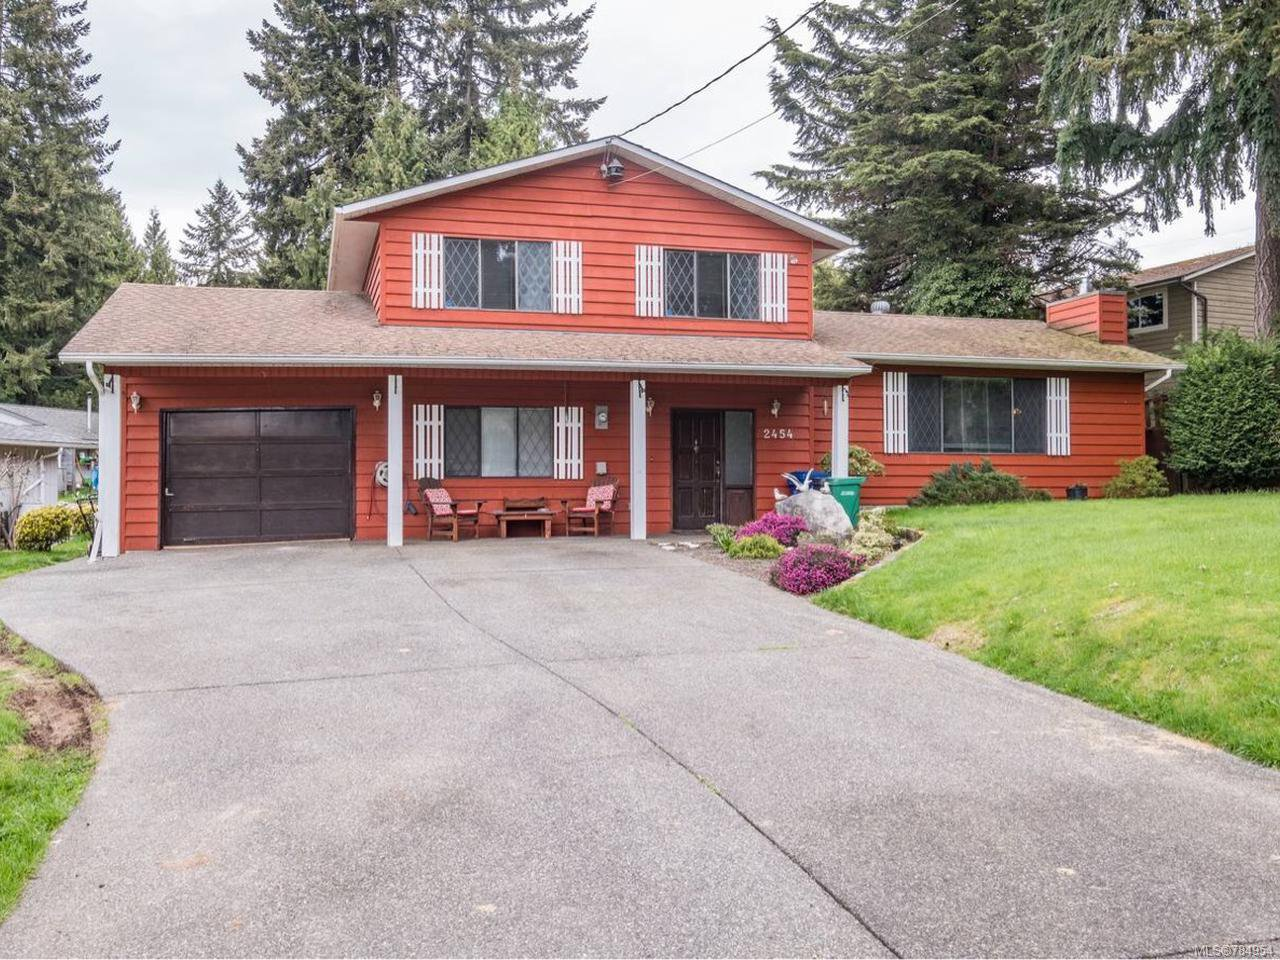 Main Photo: 2454 Jeans Way in NANAIMO: Na Diver Lake House for sale (Nanaimo)  : MLS®# 784954